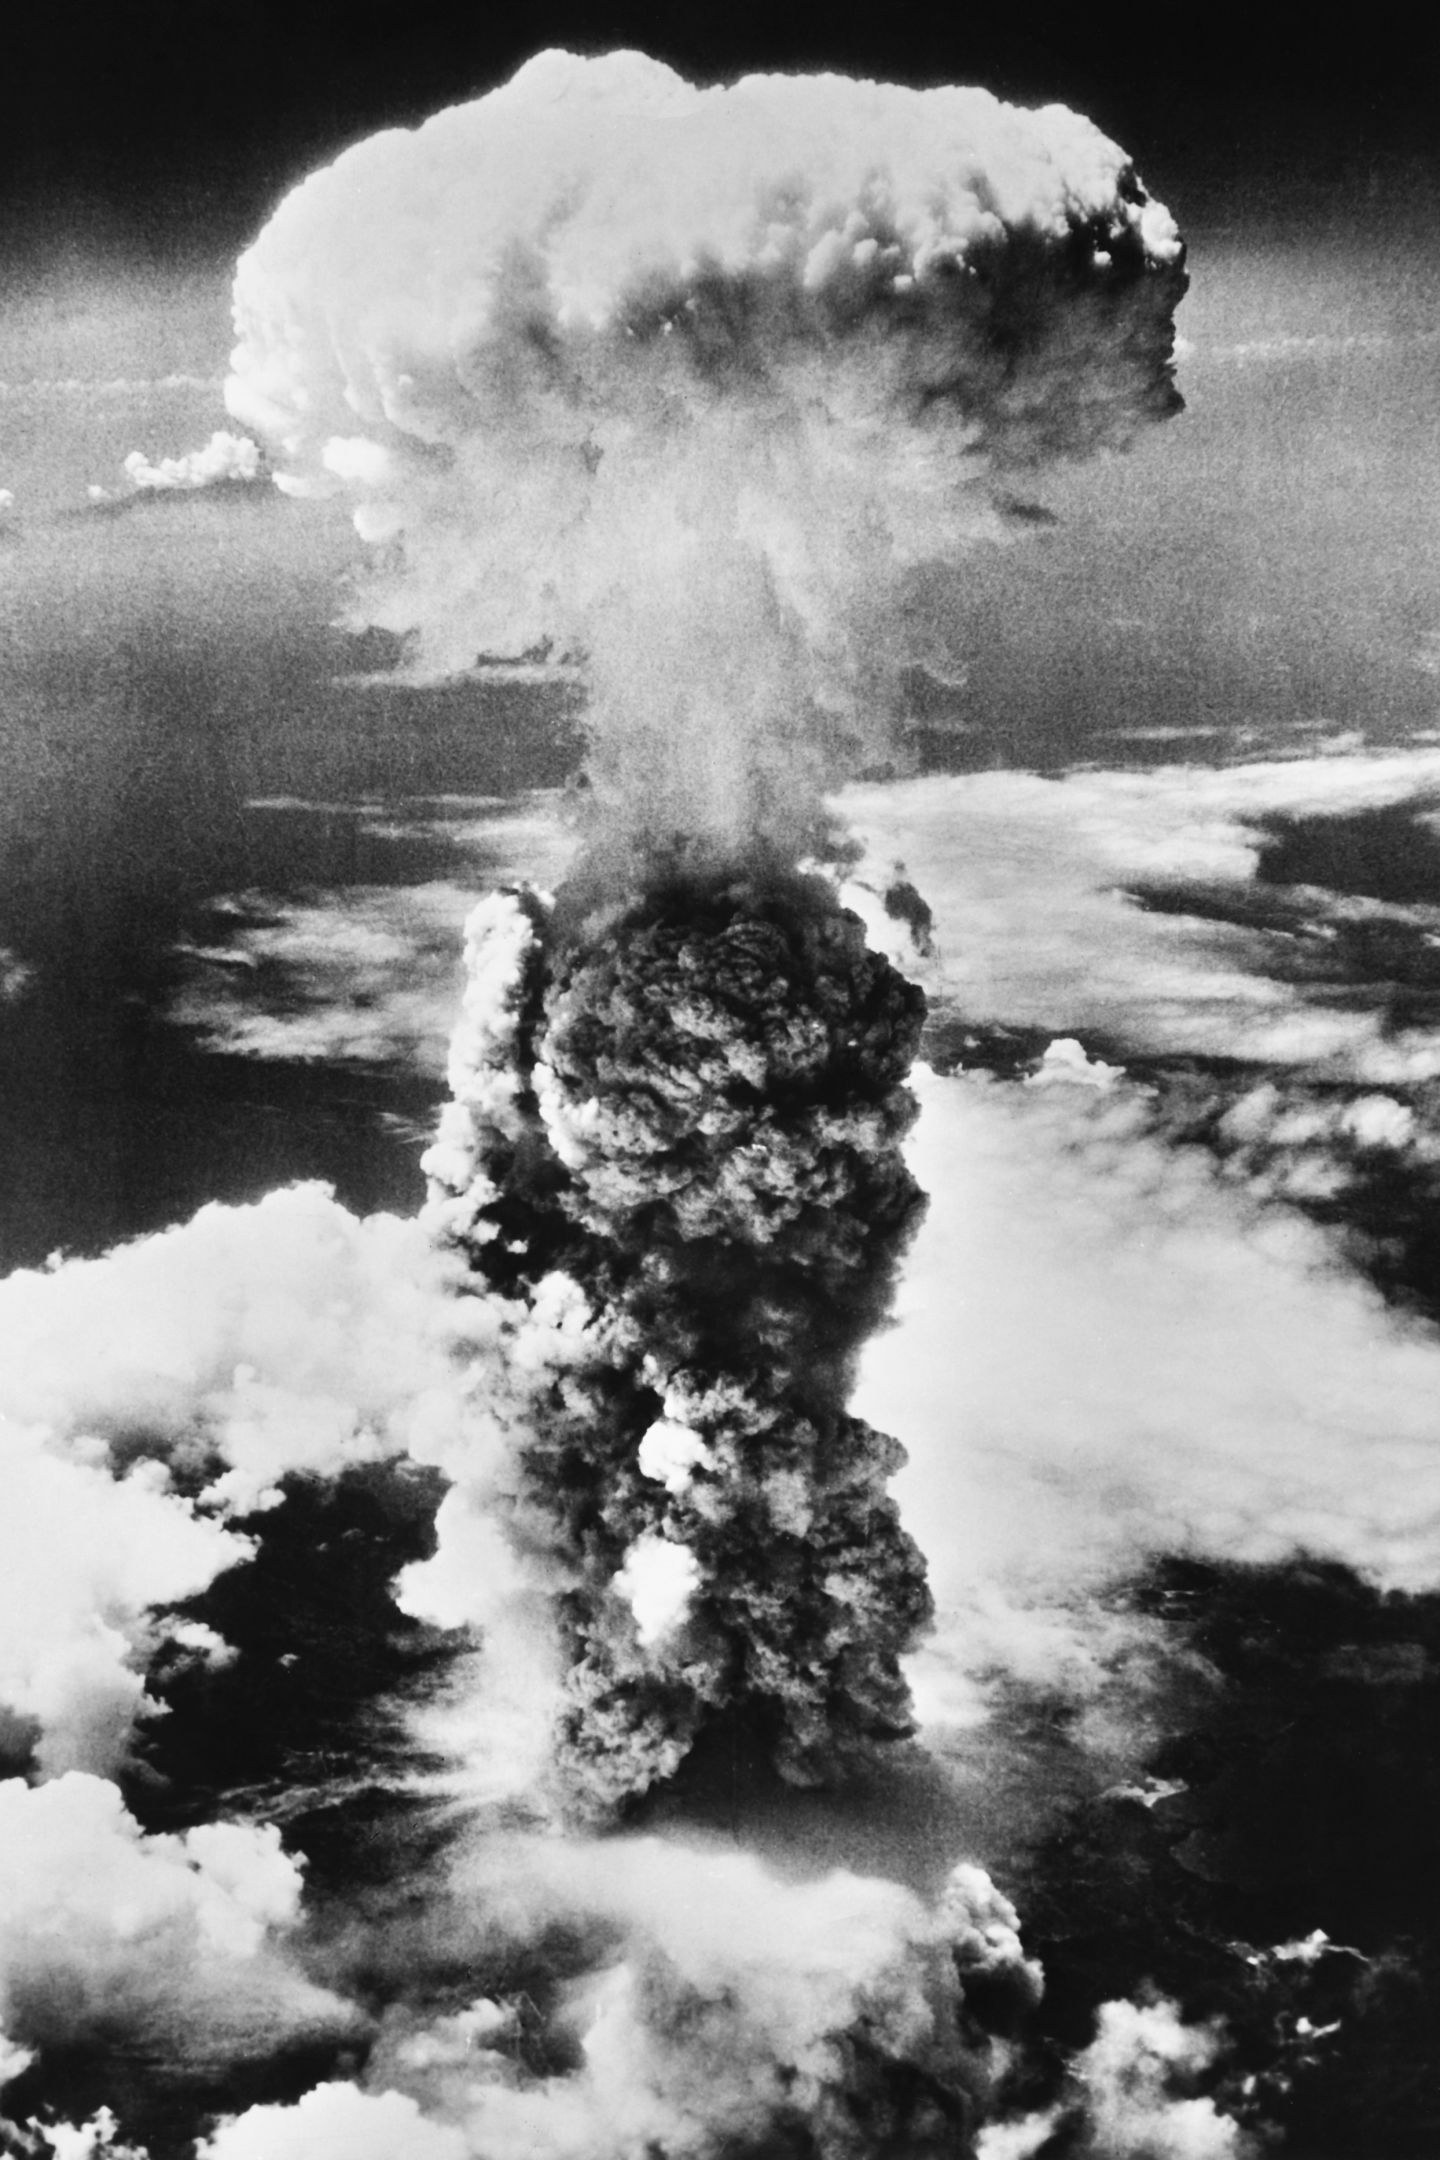 The history and creation of the atomic bomb